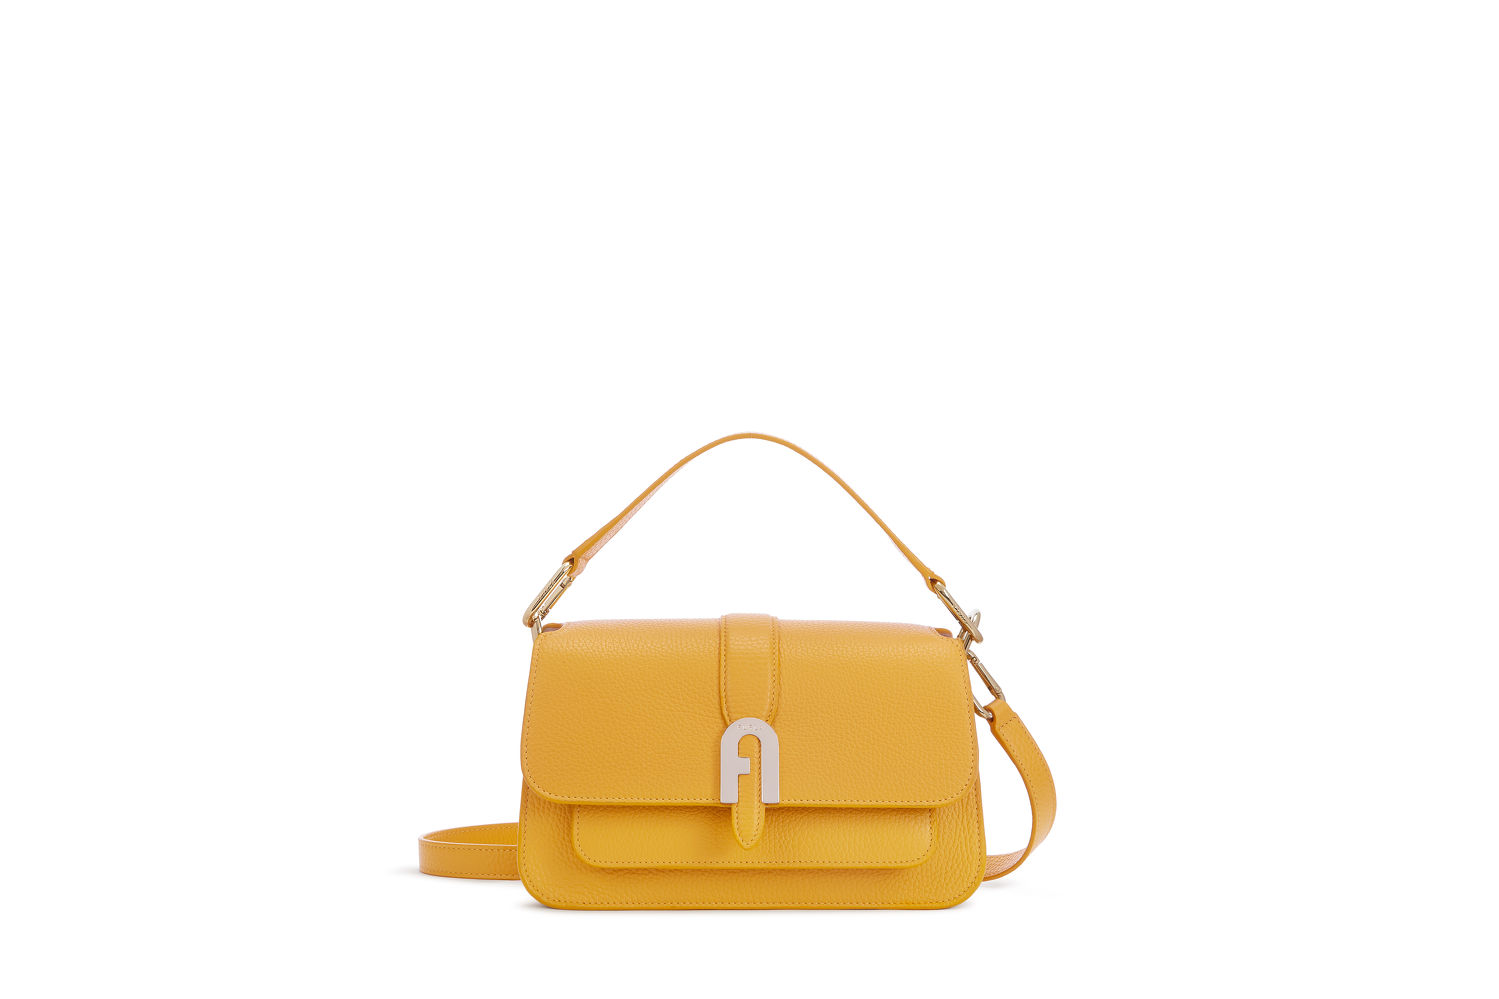 FURLA-SOFIA-GRAINY-S-TOP-HANDLE - THE EDGE SINGAPORE